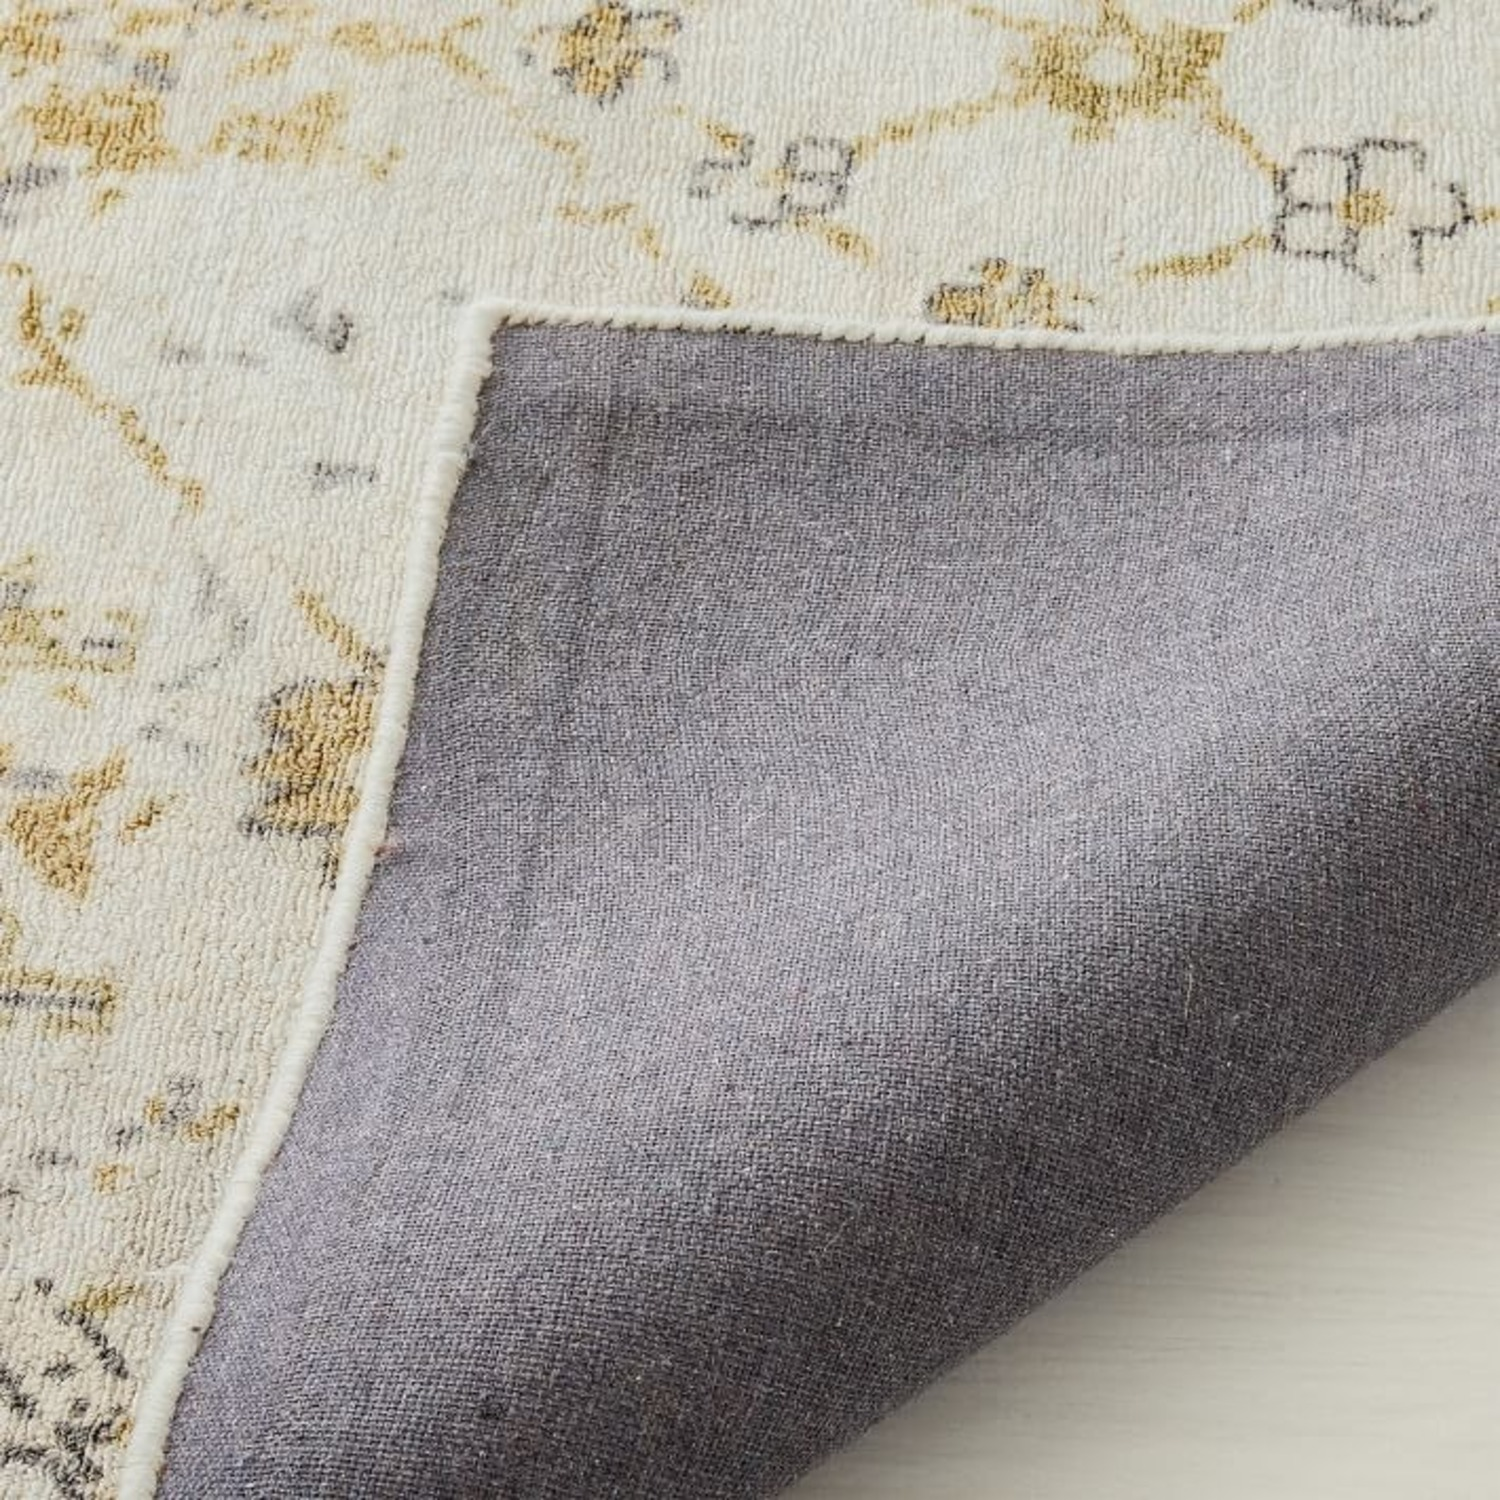 West Elm Printed Canopy Rug, Frost Gray - image-2